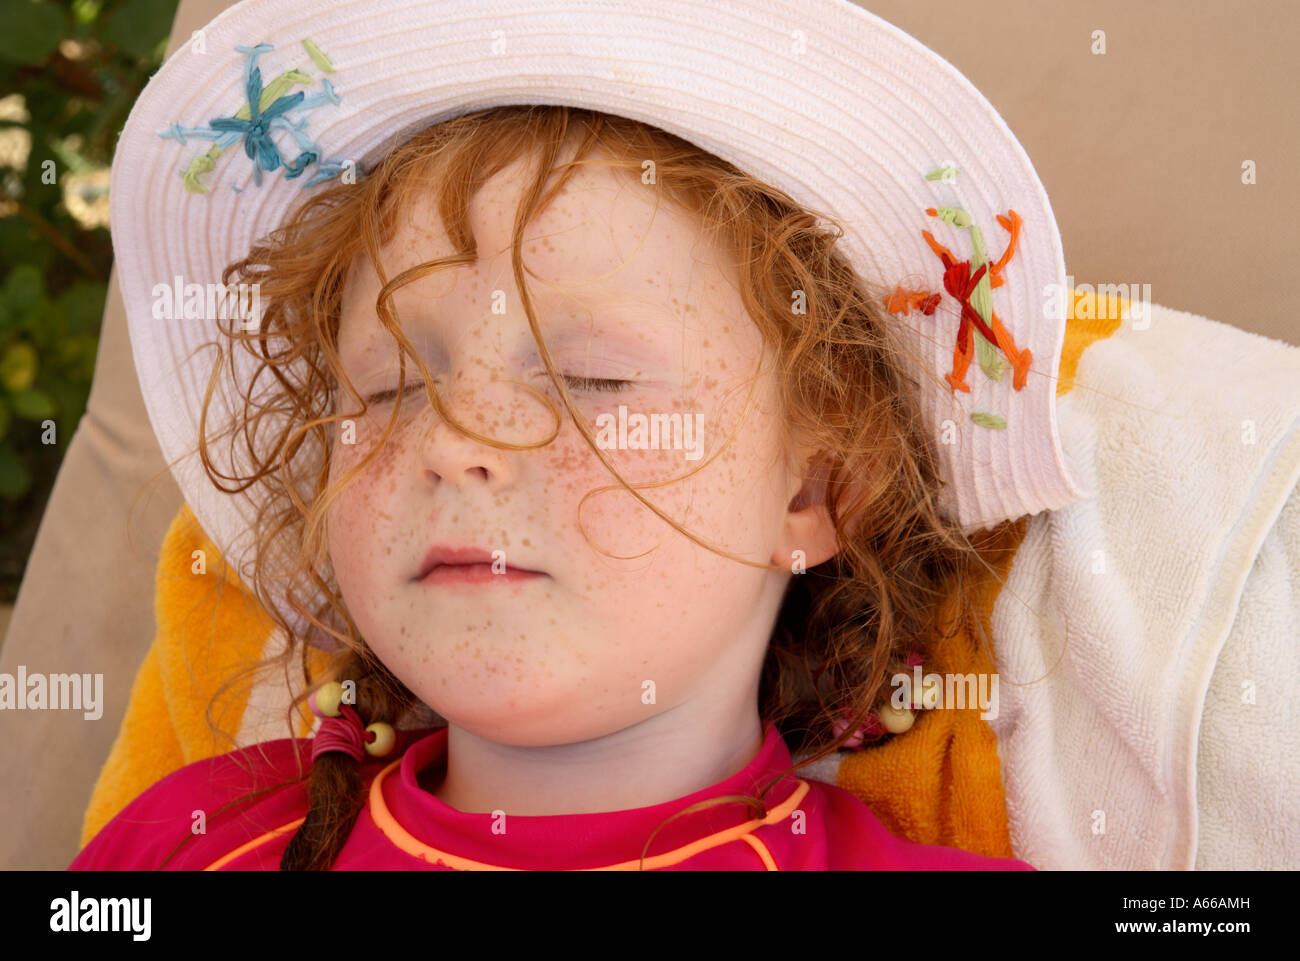 062d68c2c a small girl with red hair sleeping wearing a sun hat Stock Photo ...